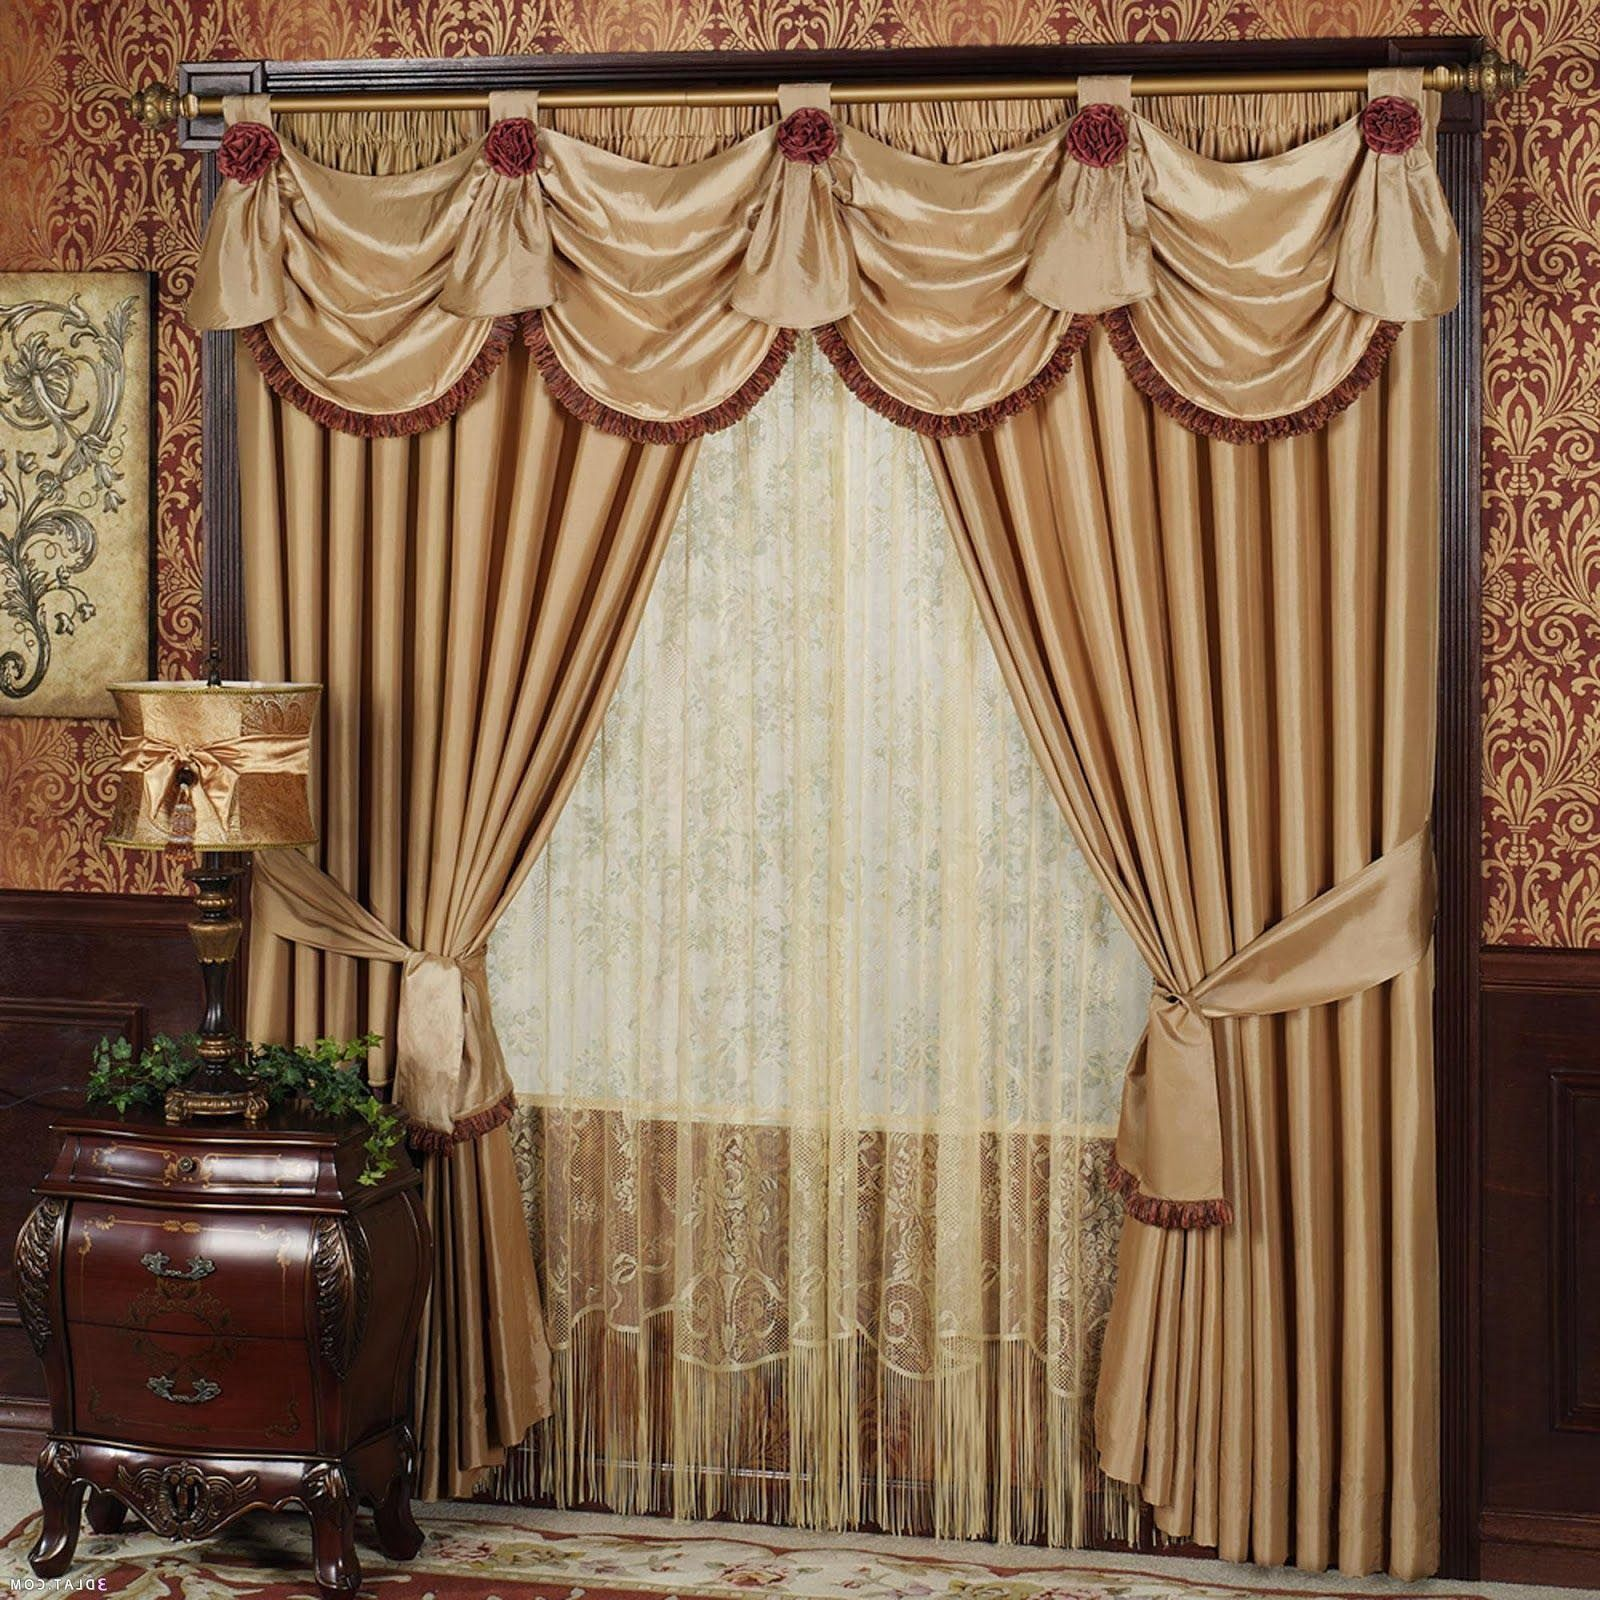 Living Room Drapes With Valances Valances For Living Room